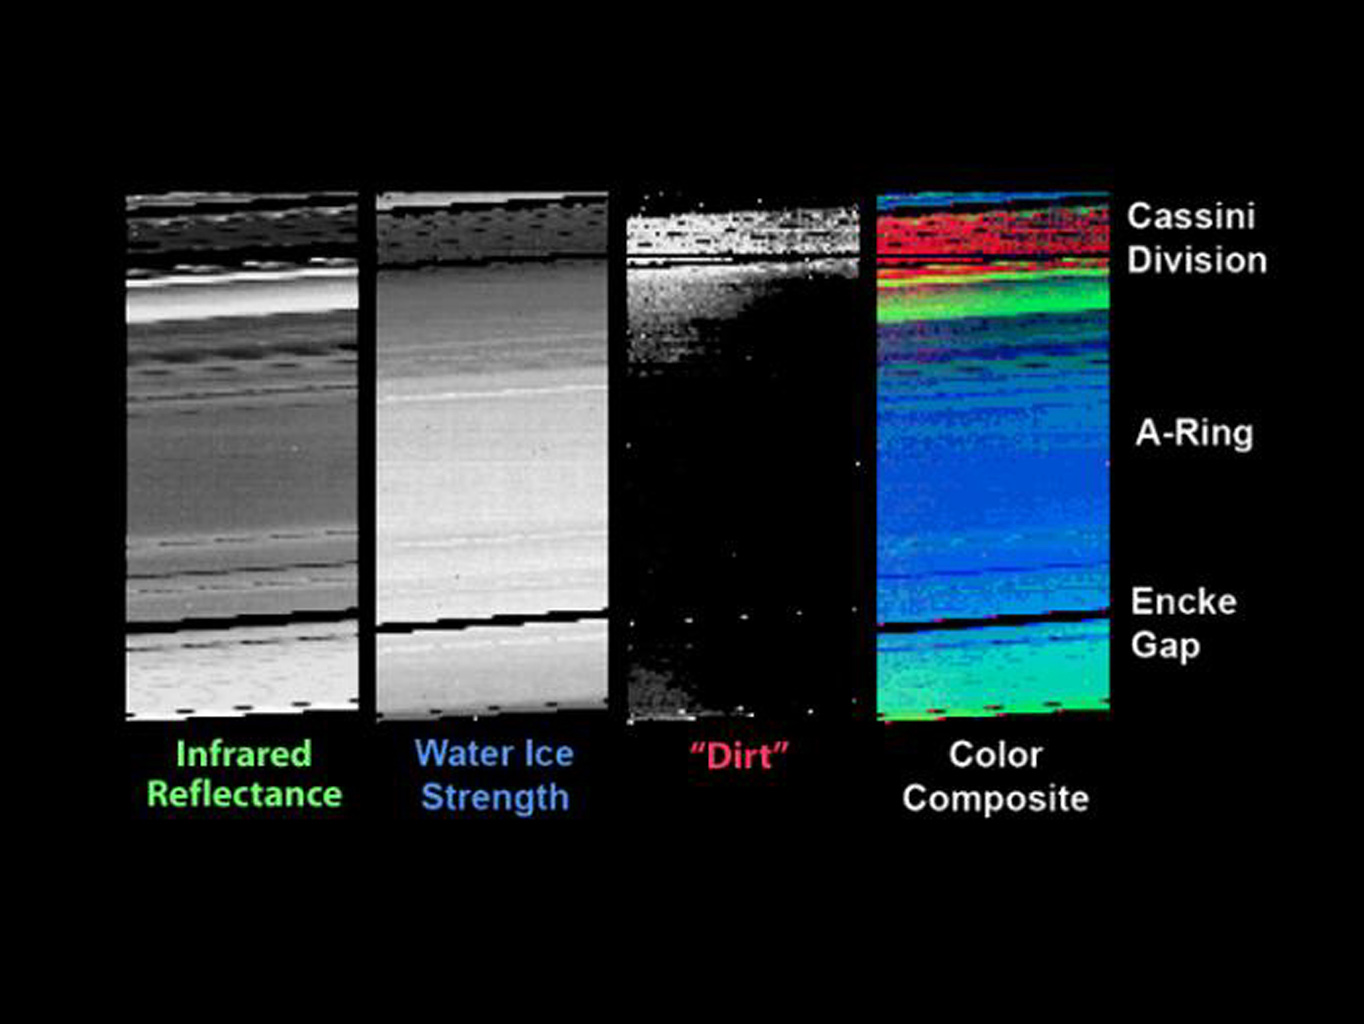 The visual and infrared mapping spectrometer on NASA's Cassini spacecraft has found evidence for a material dubbed 'dirt' in Saturn's rings.